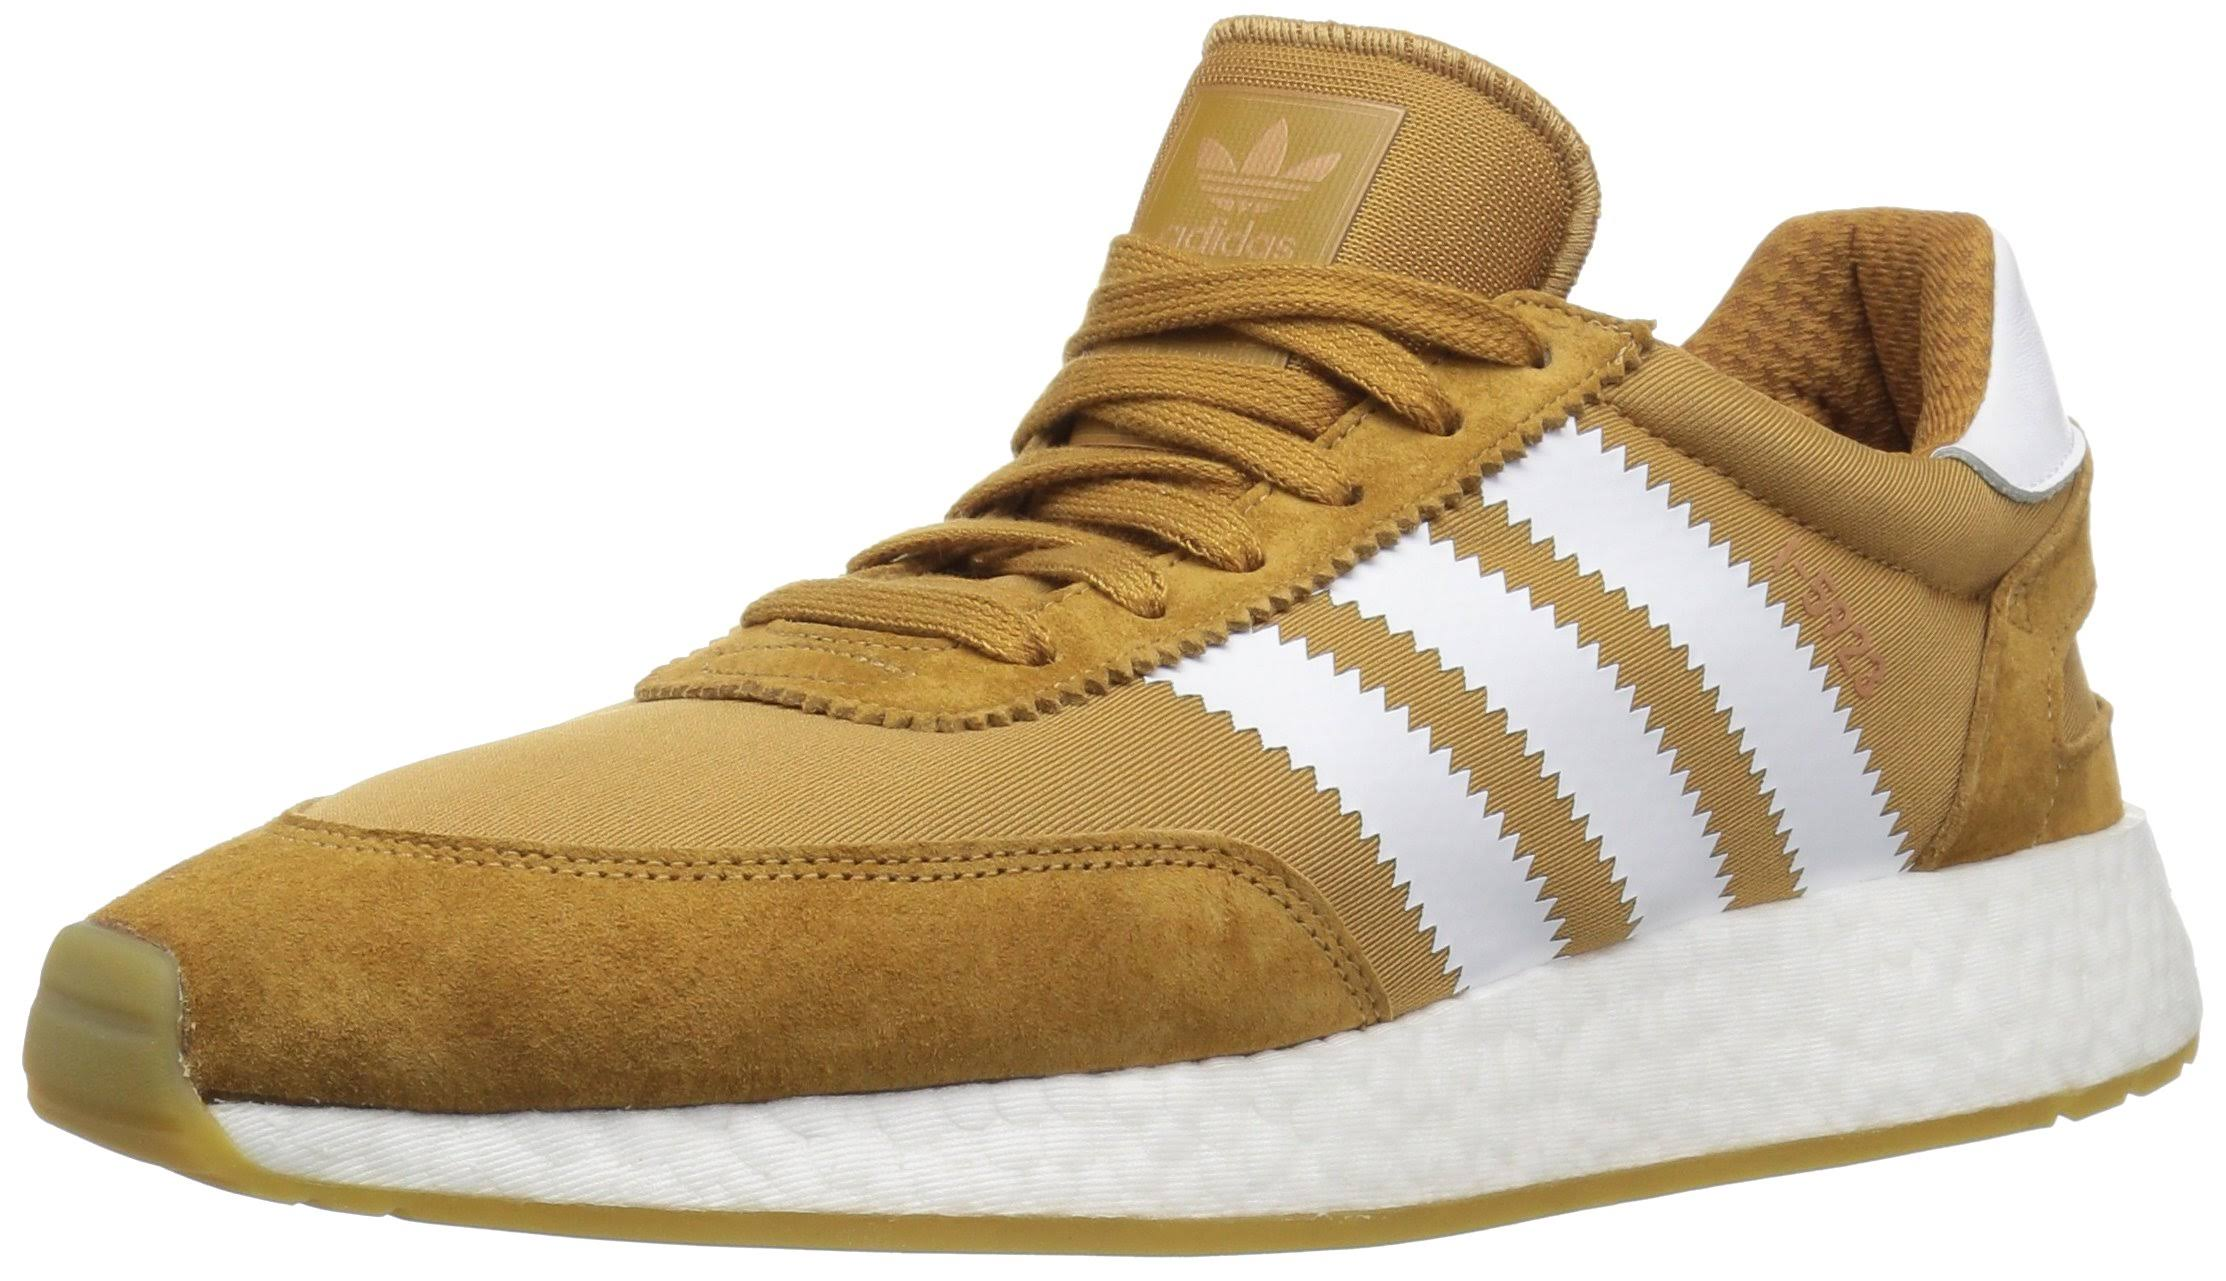 Wheat Shoe 5923 Adidas I Running Brown Men's Originals wheat Aw1nZPx